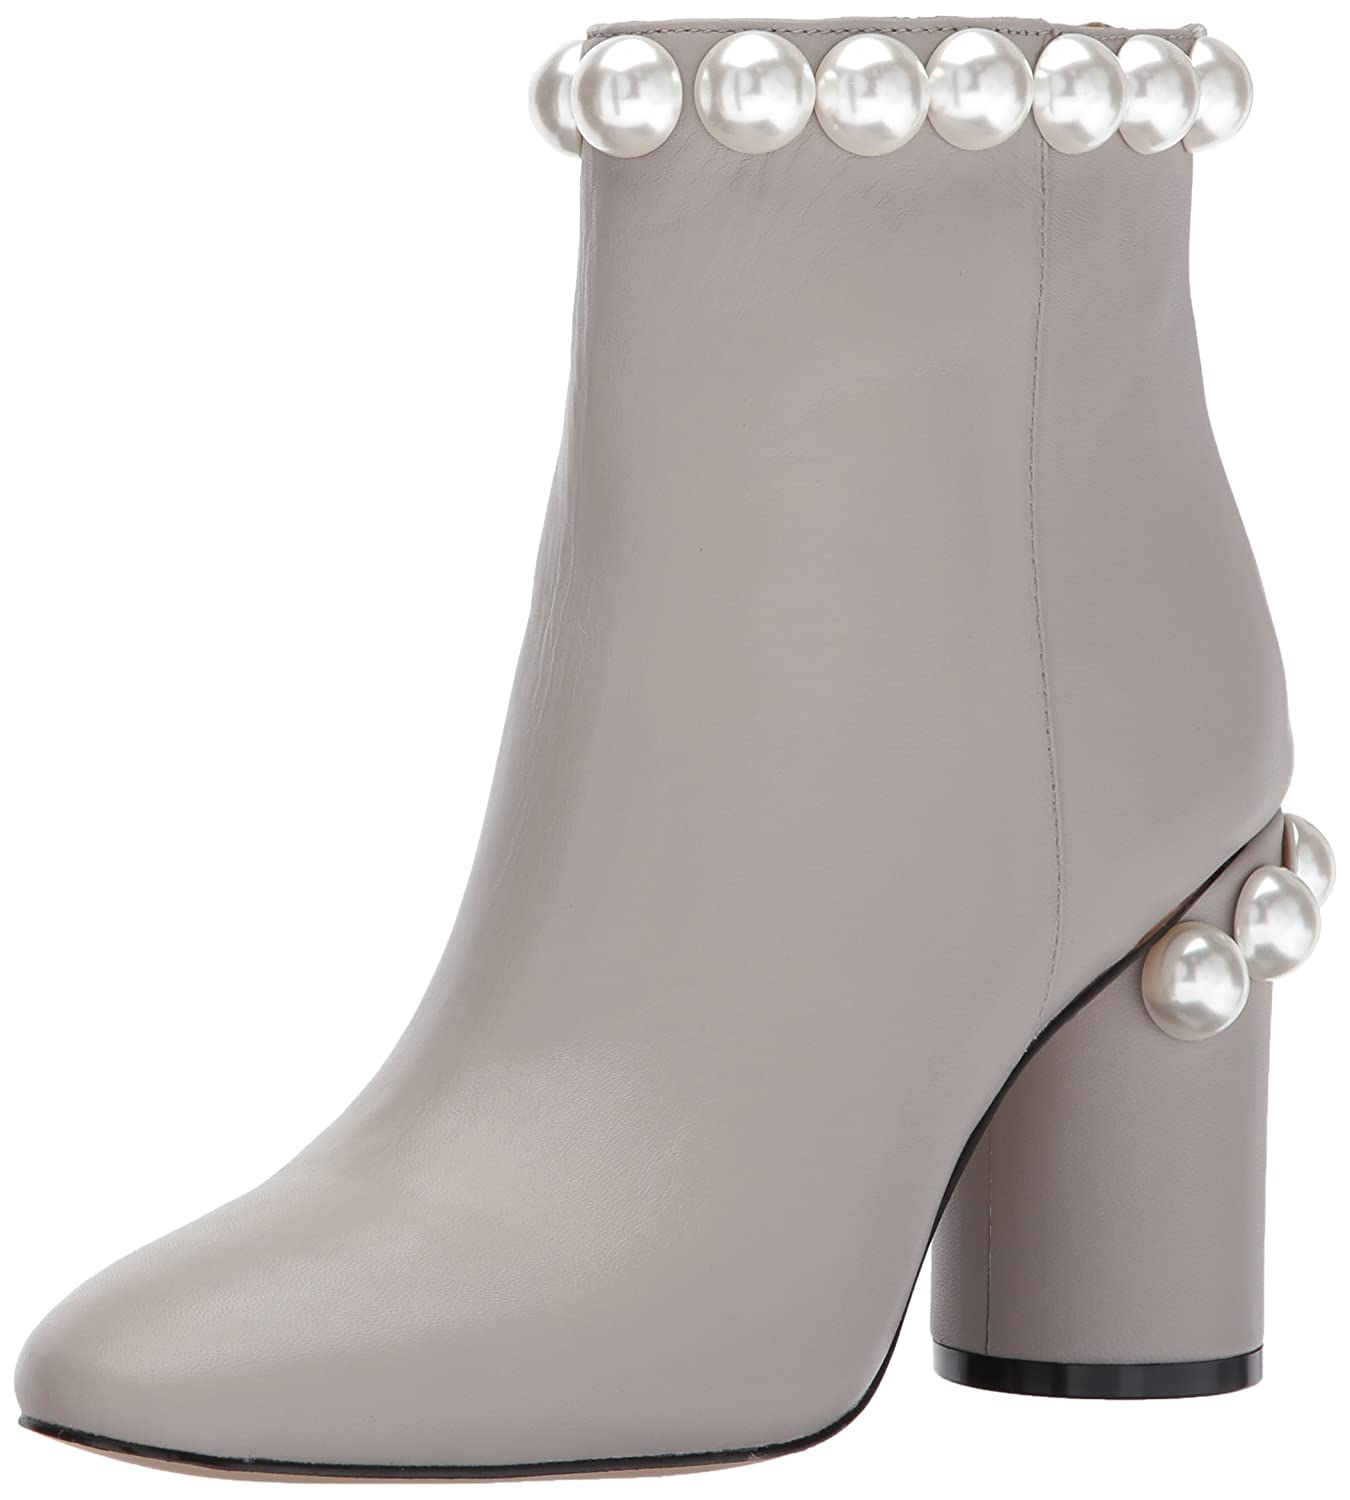 Katy Perry Women's The Opearl Ankle Boot B06XDD5NQR 6 B(M) US|Grey